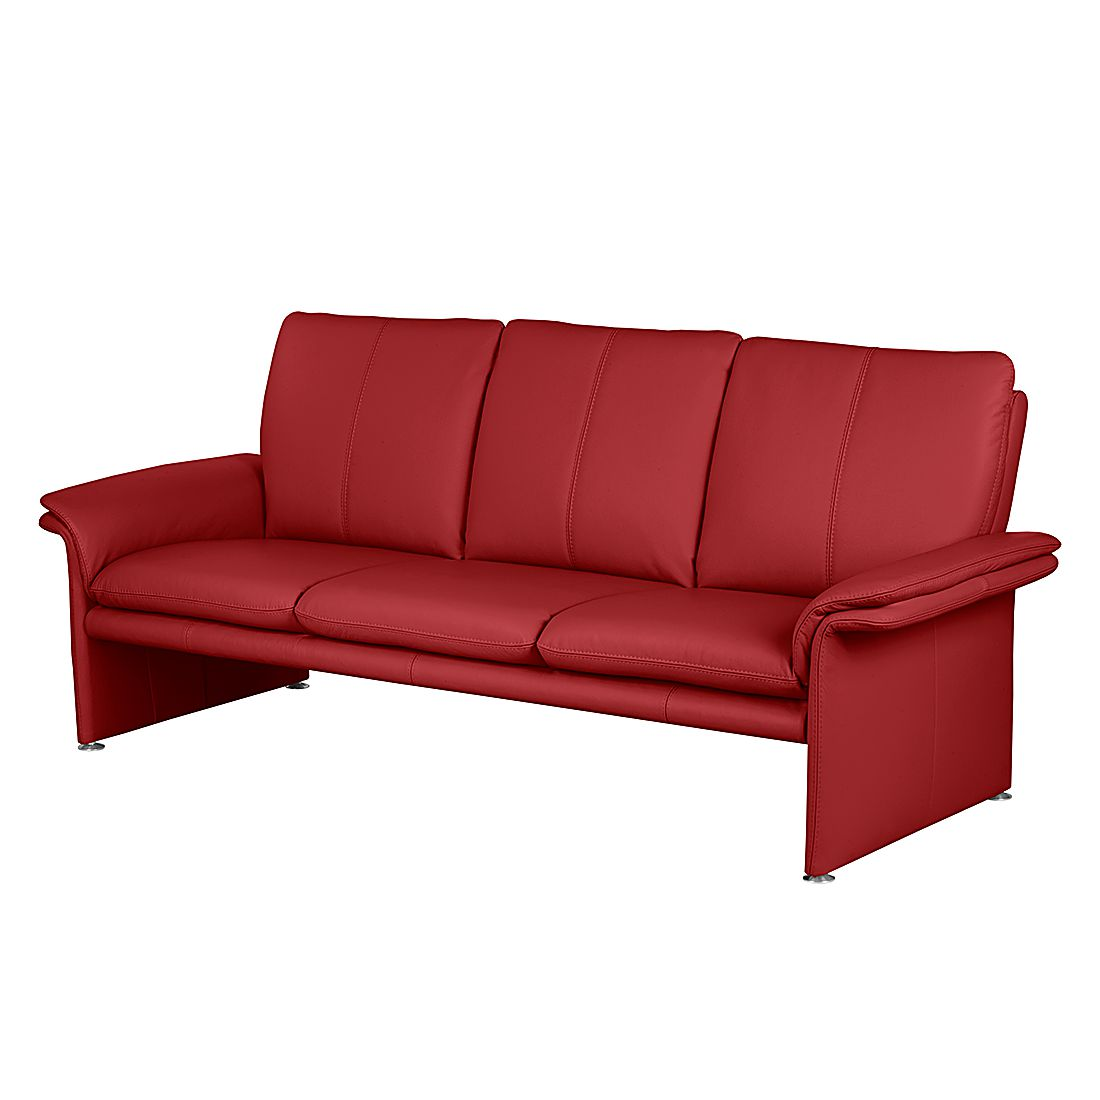 sofa capri 3 sitzer echtleder rot nuovoform g nstig. Black Bedroom Furniture Sets. Home Design Ideas